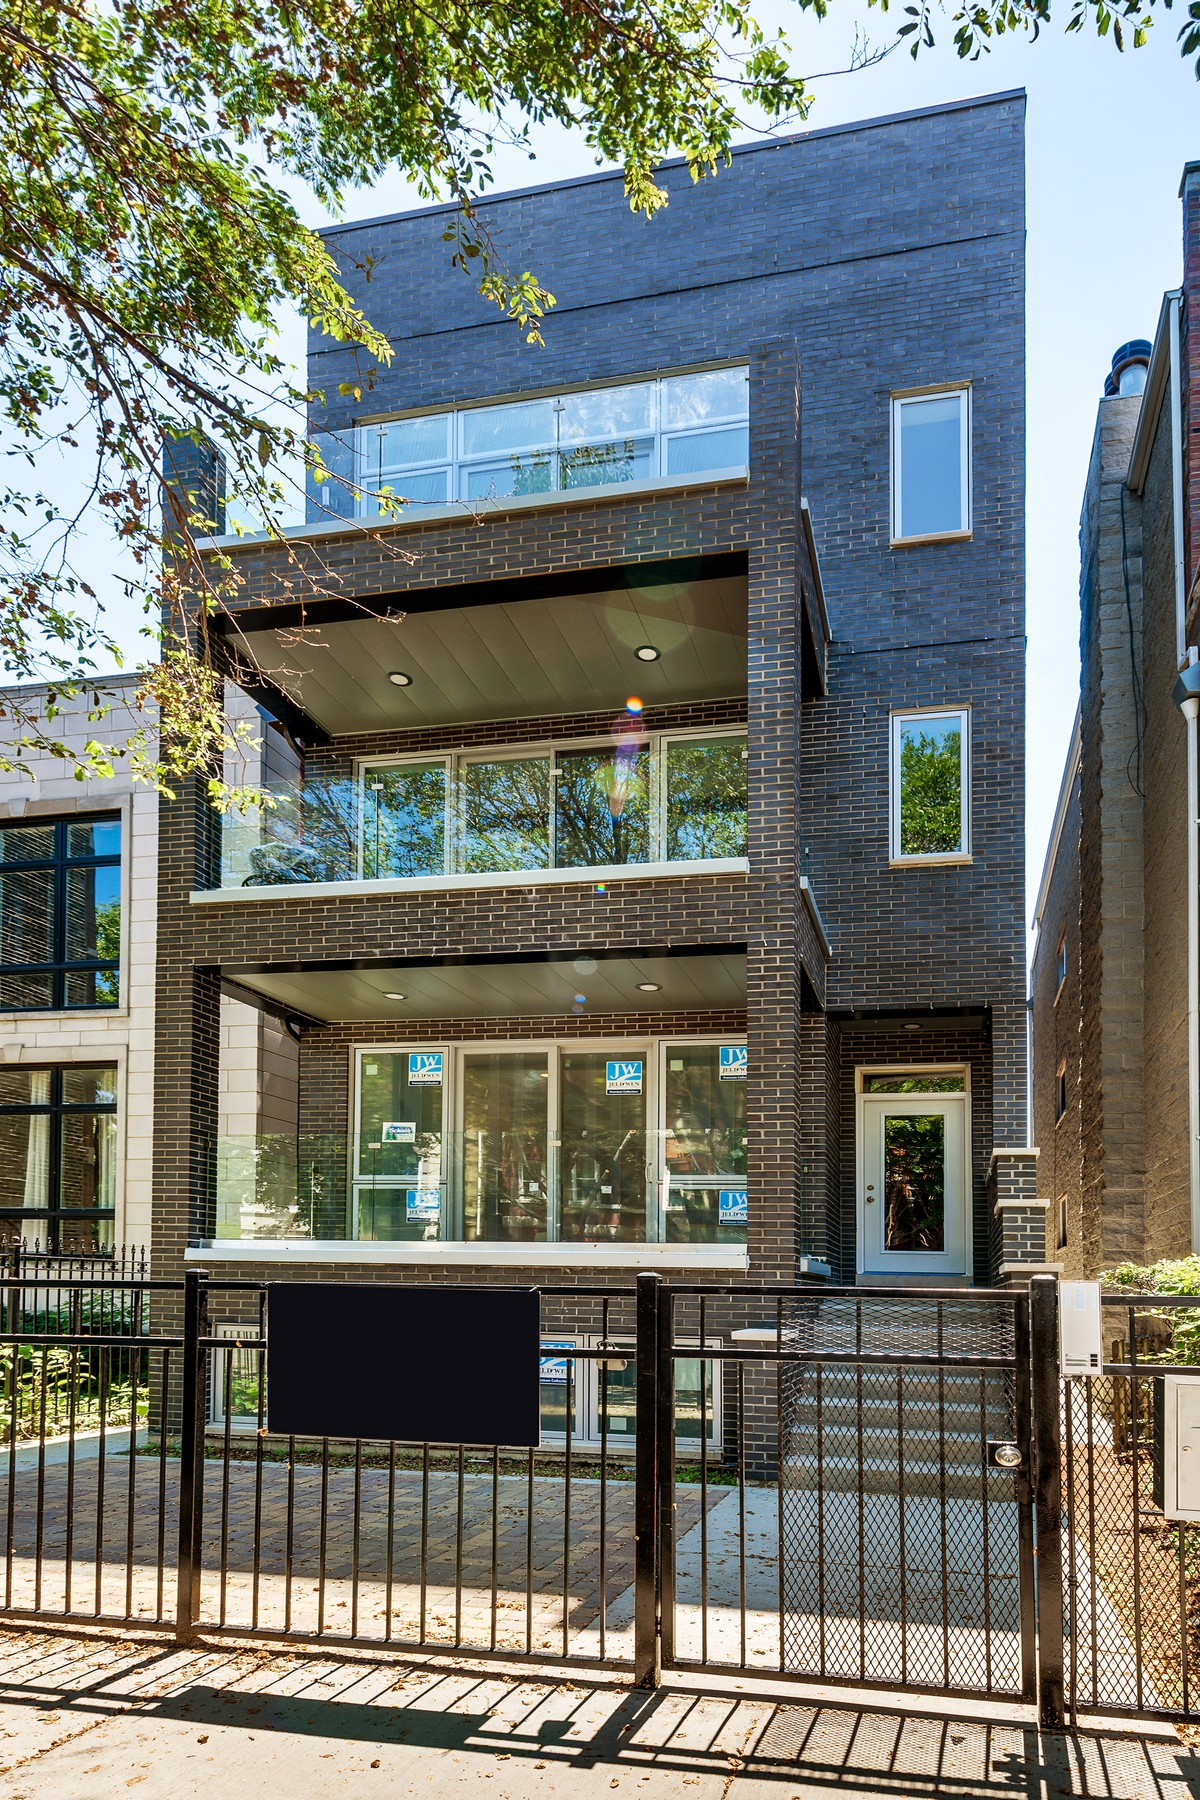 Condominium for Sale at Beautiful Wicker Park New Development Penthouse! 1232 N Noble Street Unit 3 West Town, Chicago, Illinois, 60642 United States